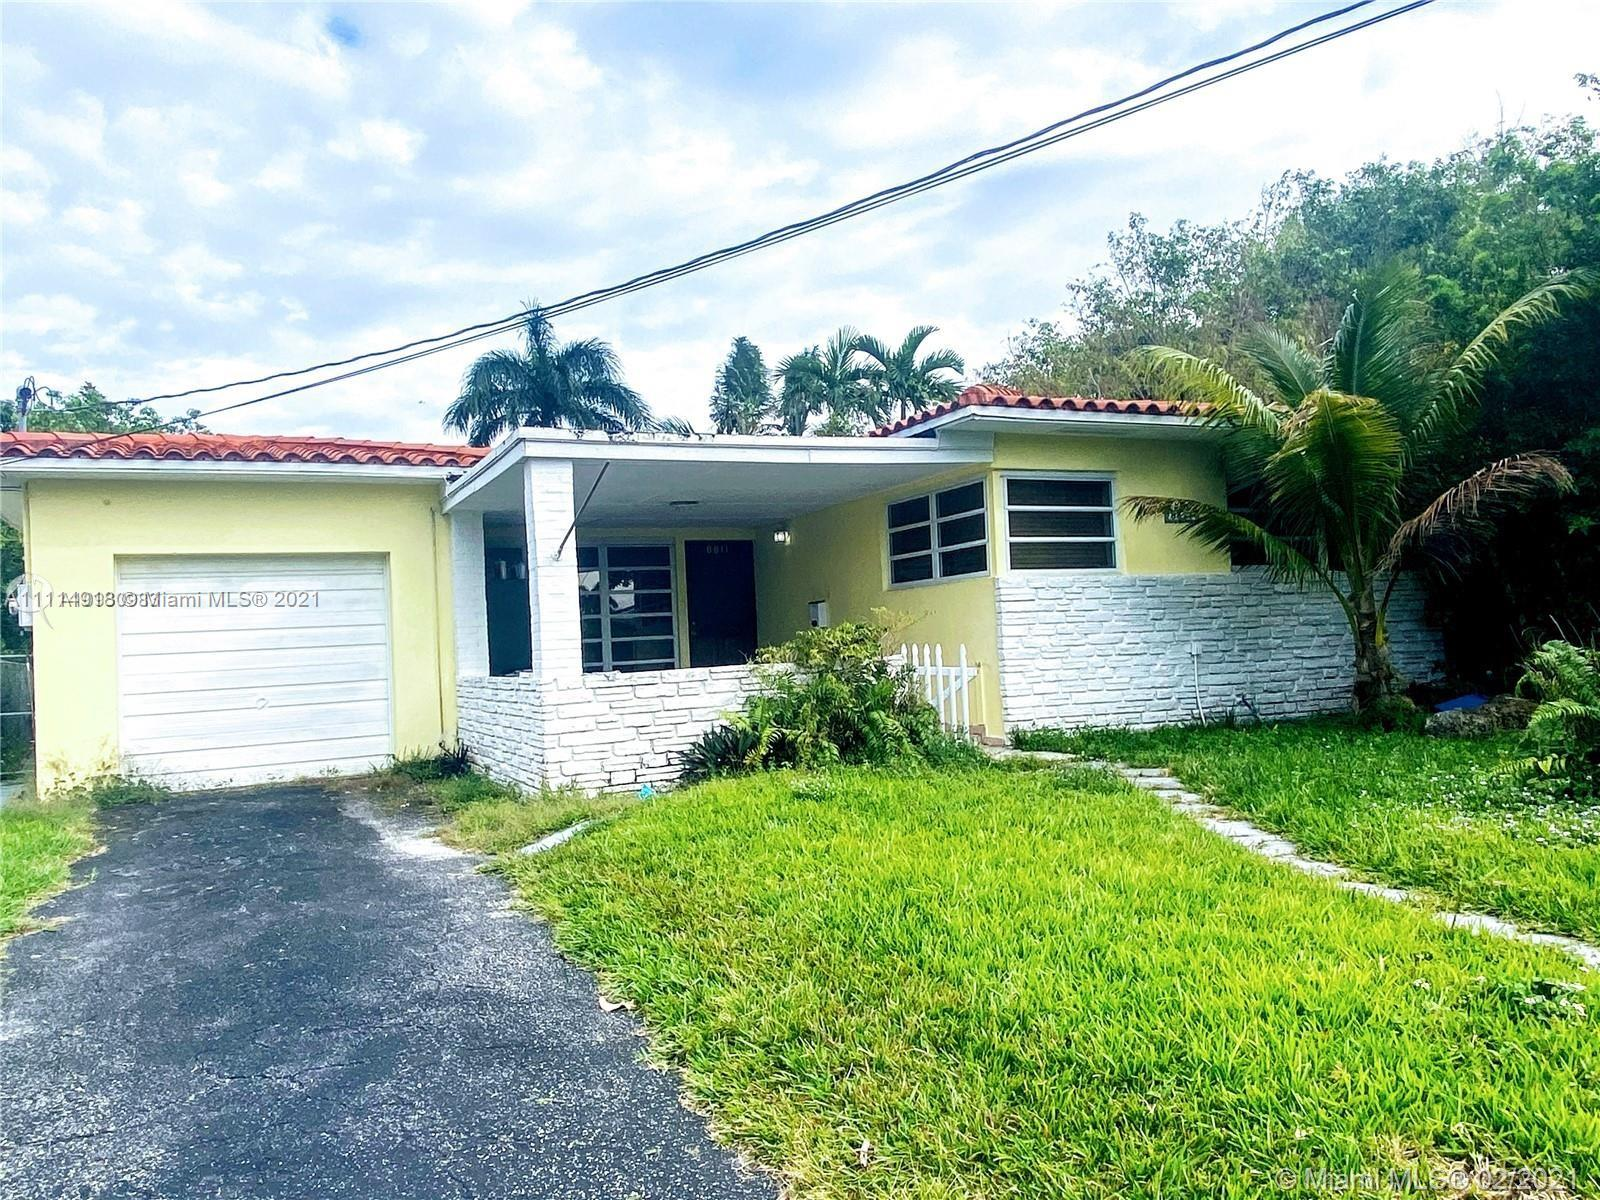 8811 Carlyle Ave, Surfside, Florida 33154